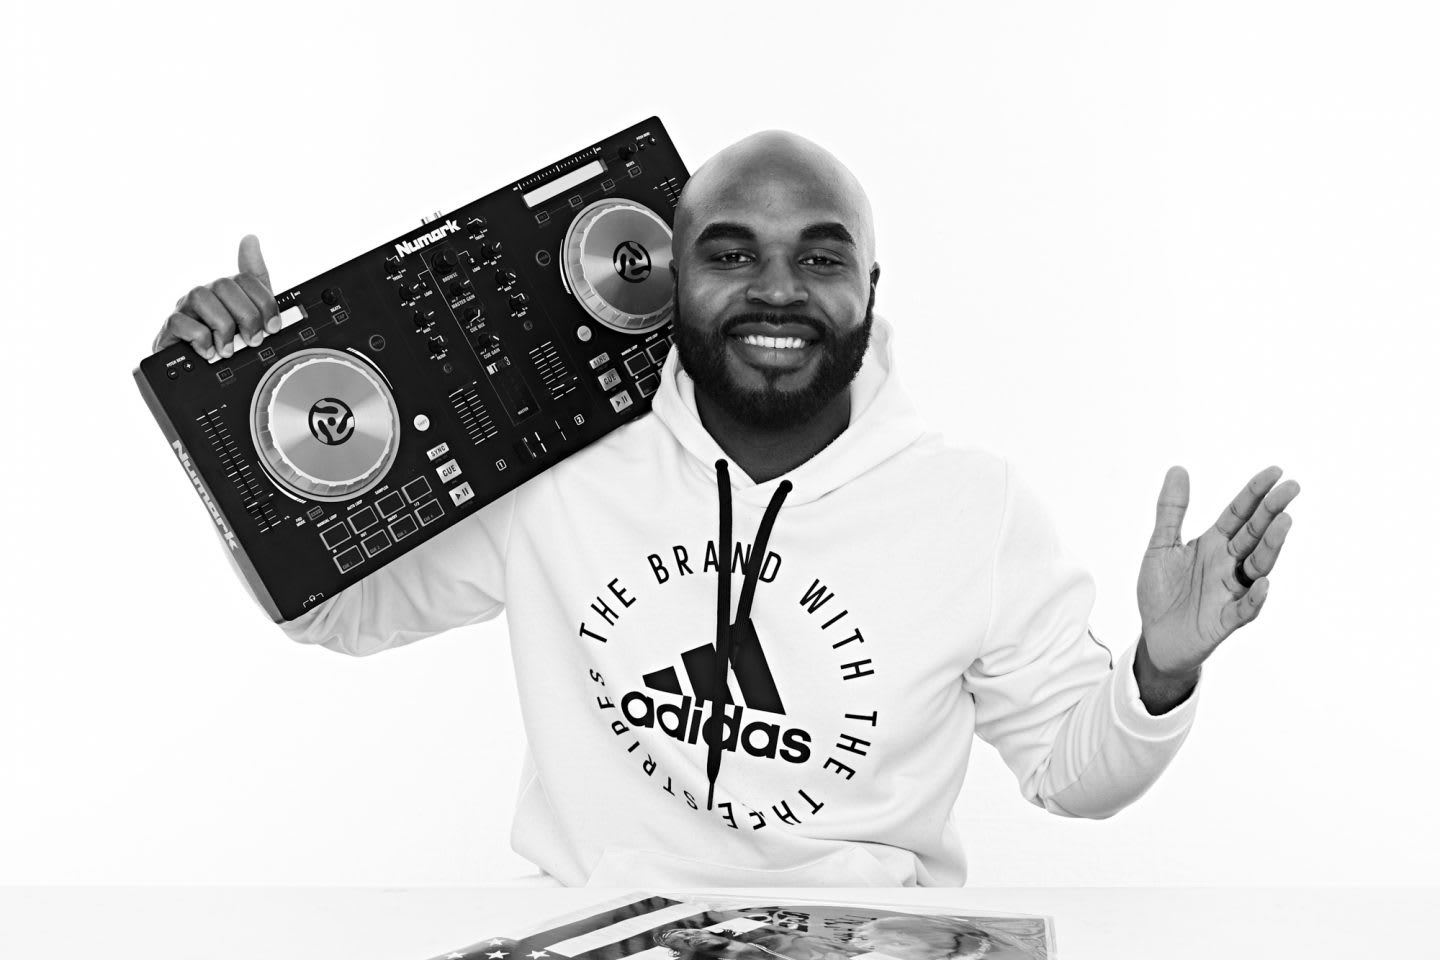 Man wearing adidas hoodie posing with a boombox on his shoulder, music, DJ, creator, creativity, Aaron Limonthas, adidas, employee